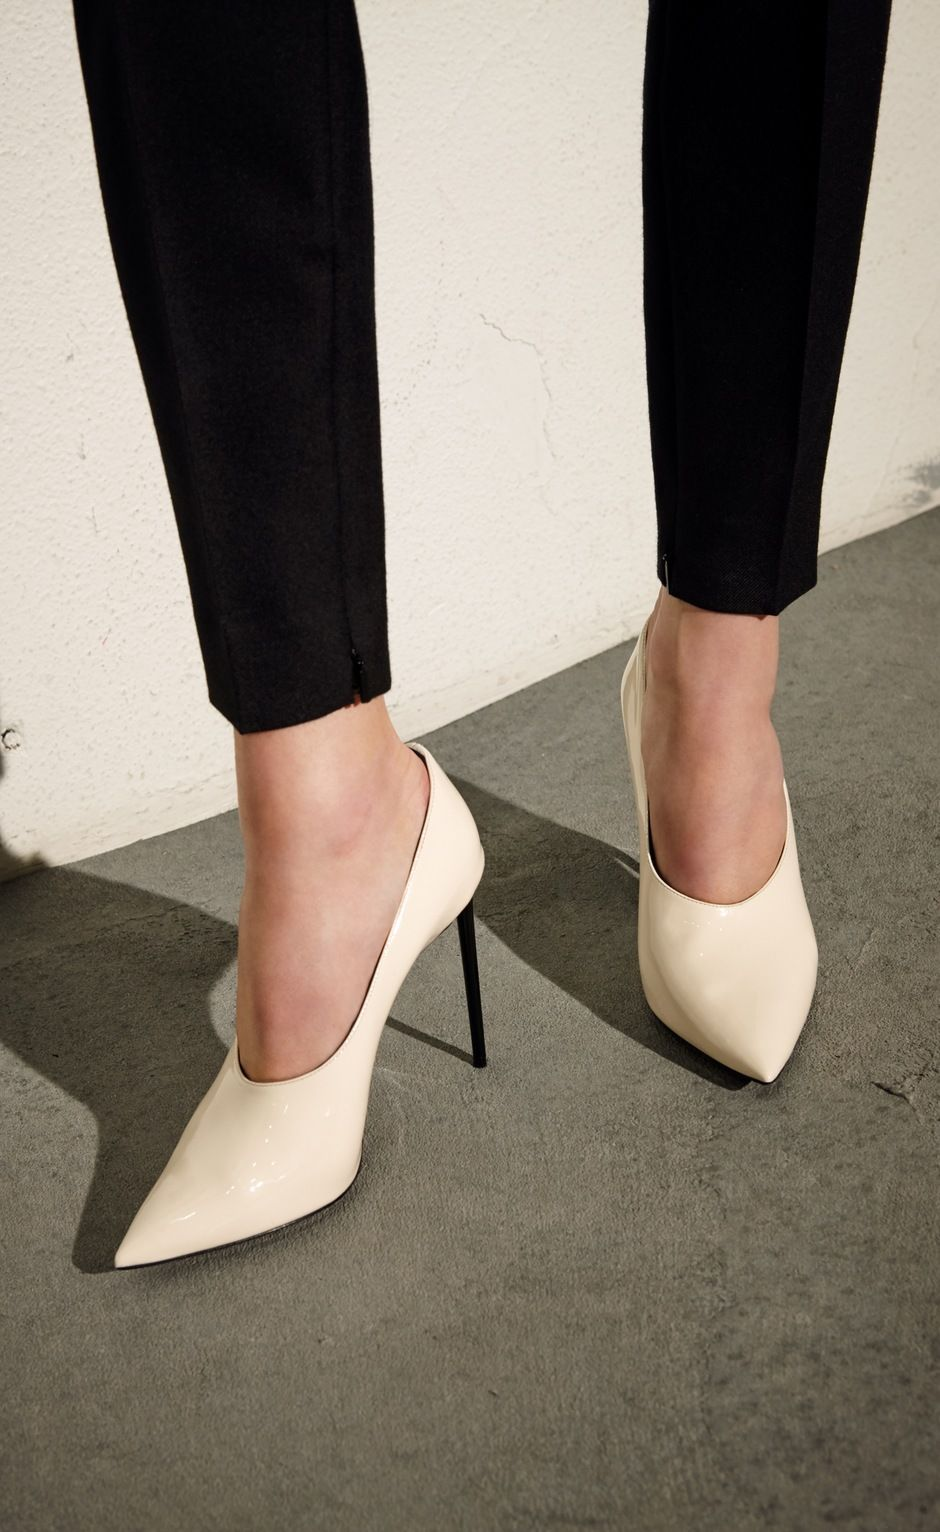 78ea758da250c9 These new Saint Laurent Teddy pumps are simply gorgeous. They re modern and  sleek